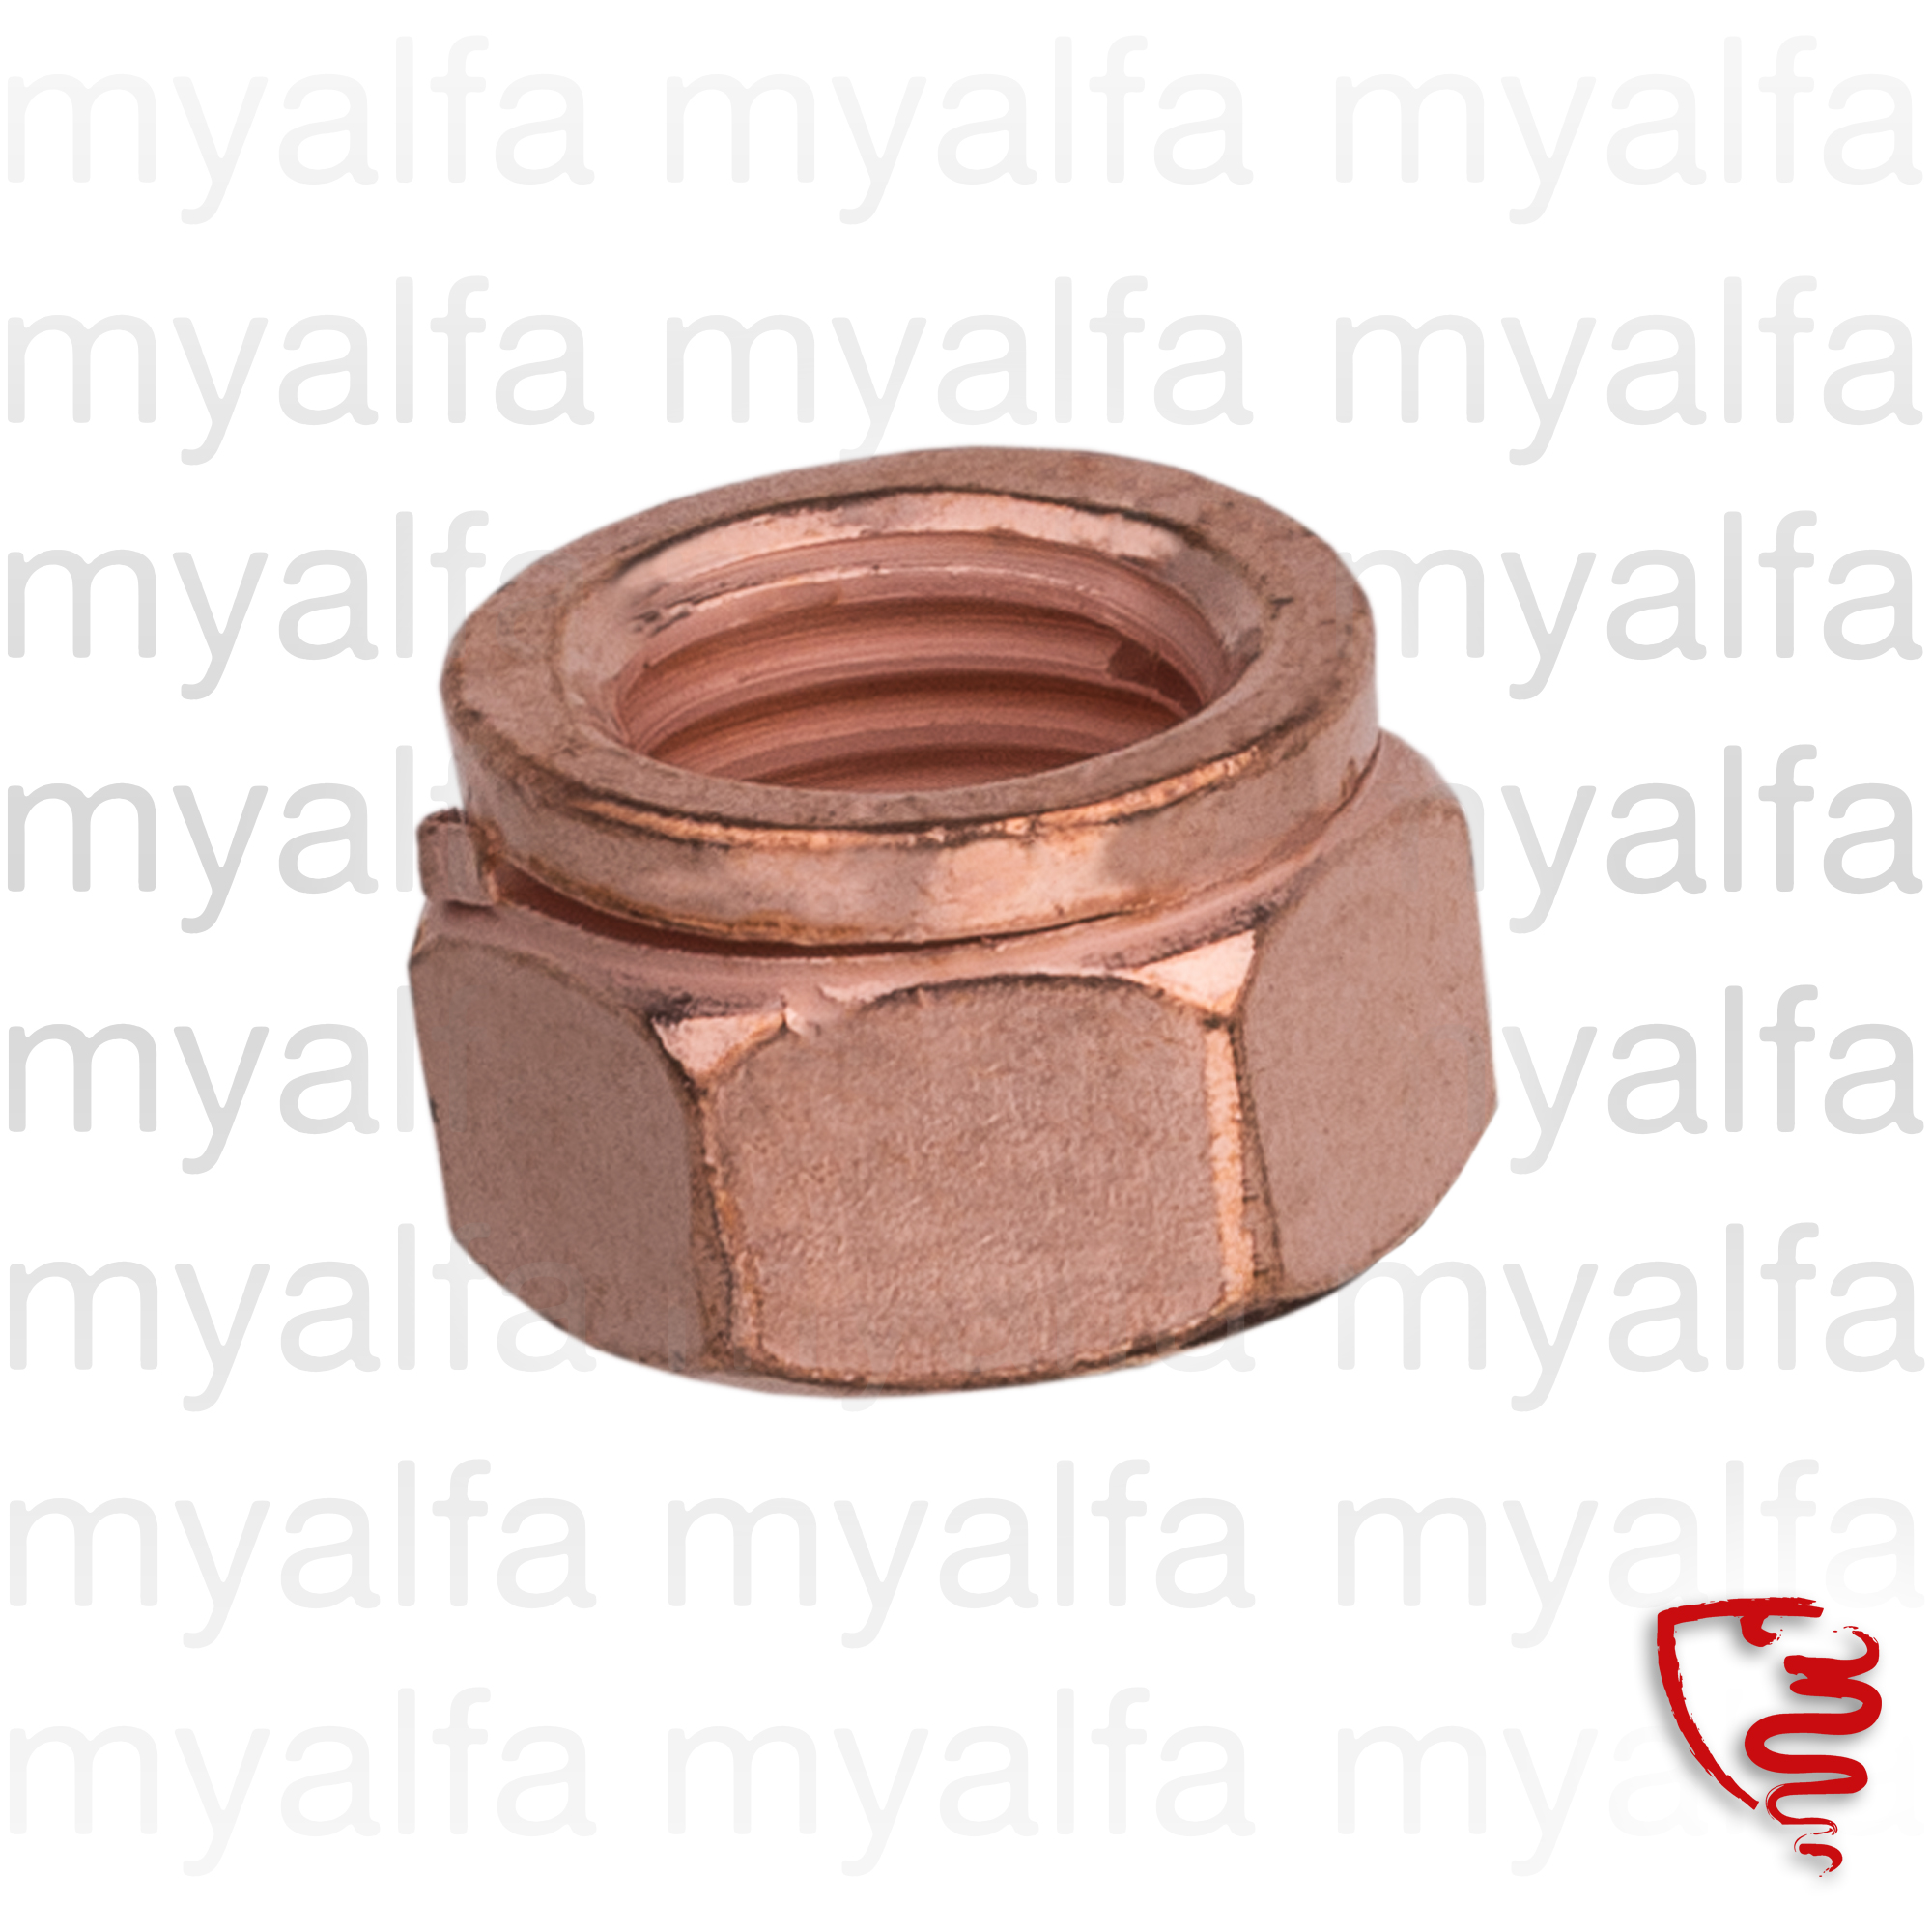 Nut 8x1 exhaust manifold for 12mm copper for 105/115, Exhaust System, Exhaust